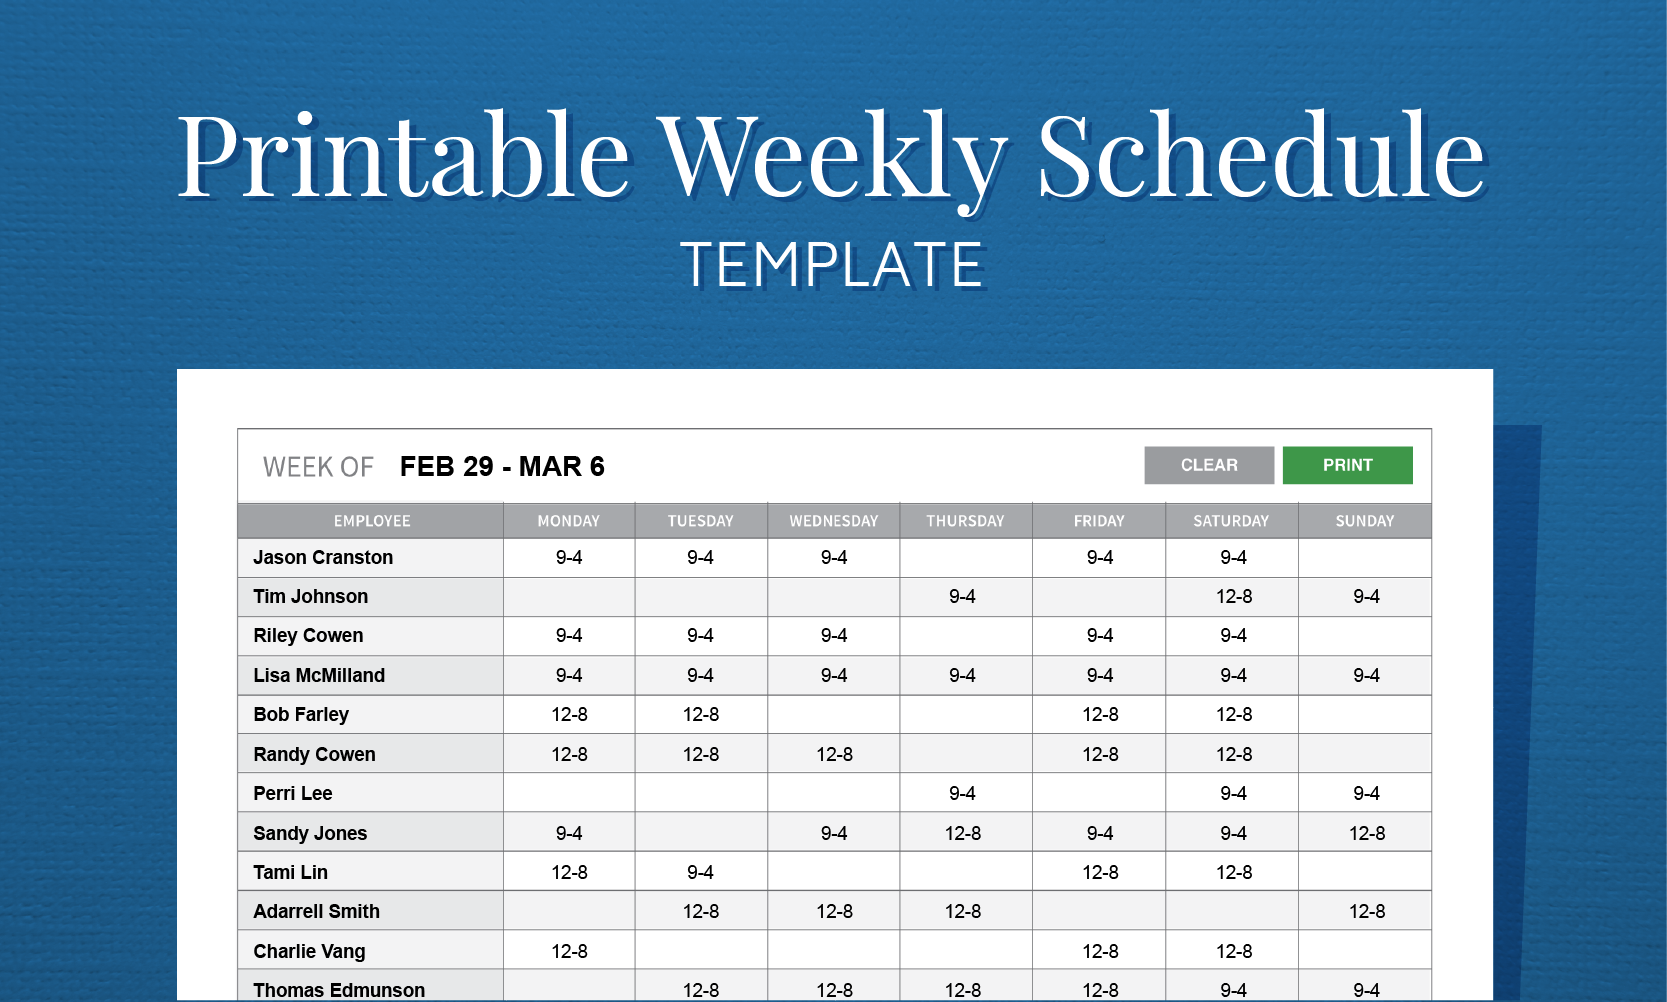 template for a weekly work schedule  Free Printable Weekly Work Schedule Template For Employee ..